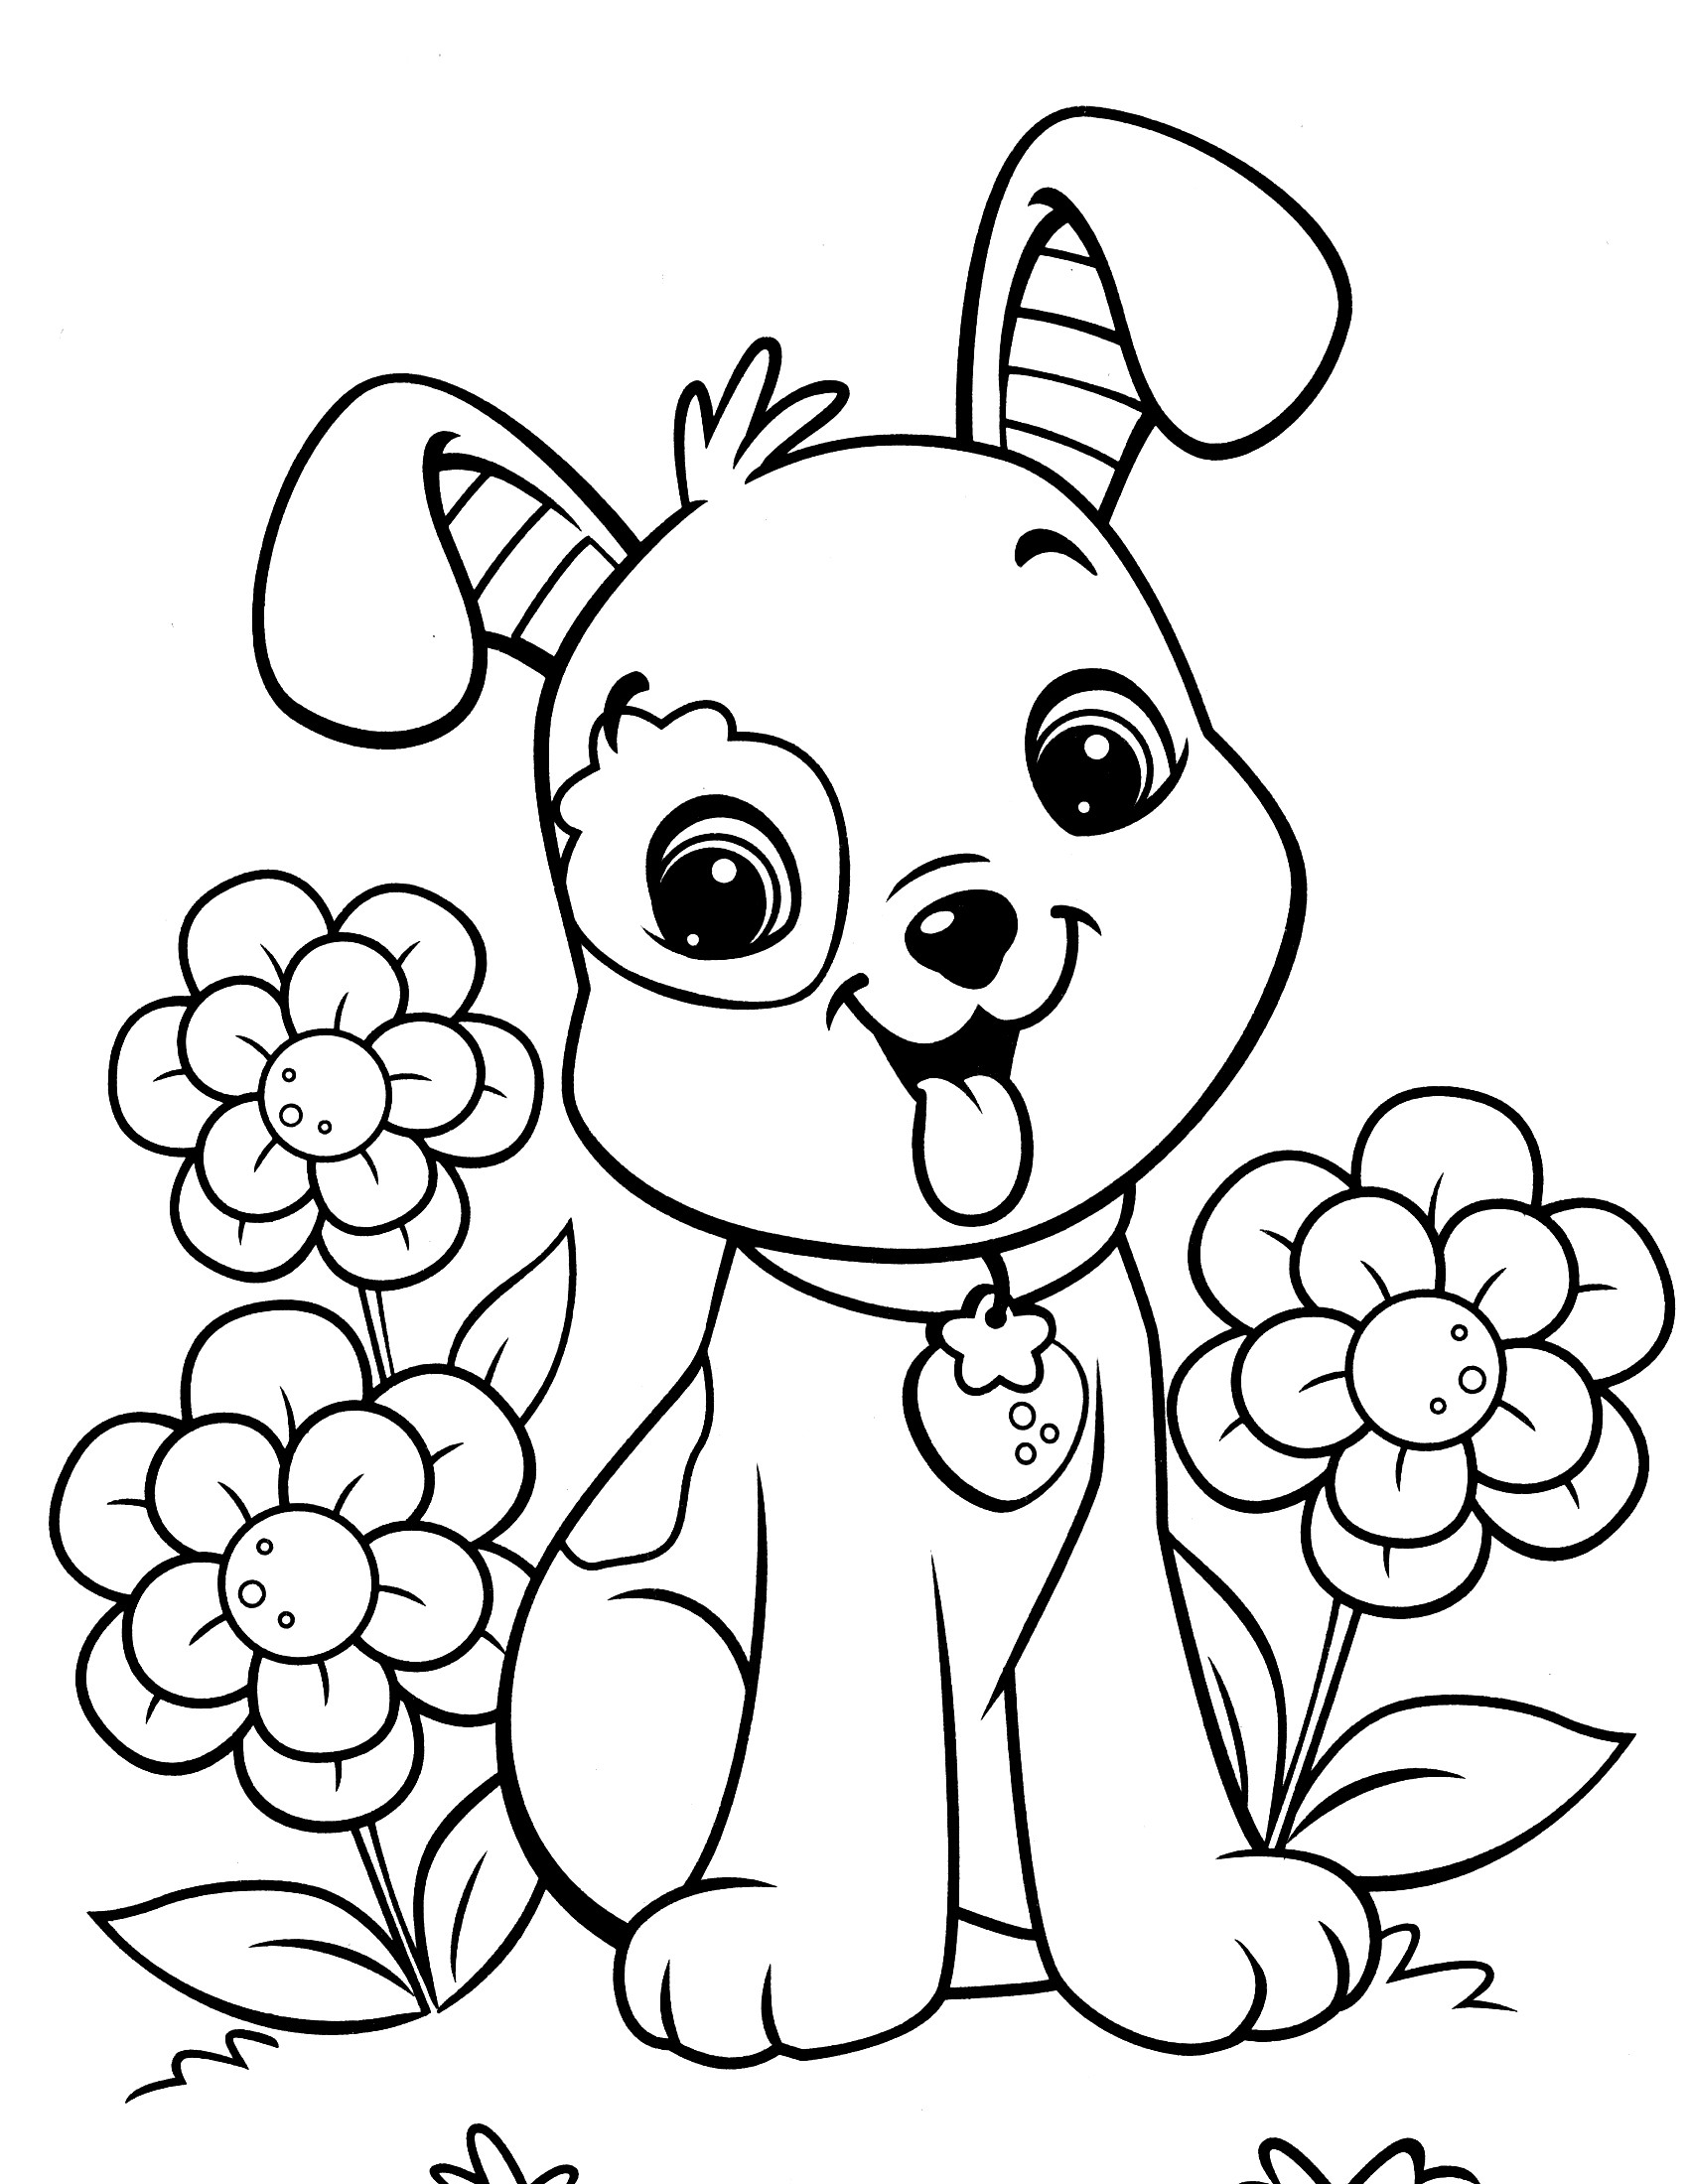 Best ideas about Puppy Coloring Sheets For Girls . Save or Pin Strawberry Shortcake Coloring Pages Now.